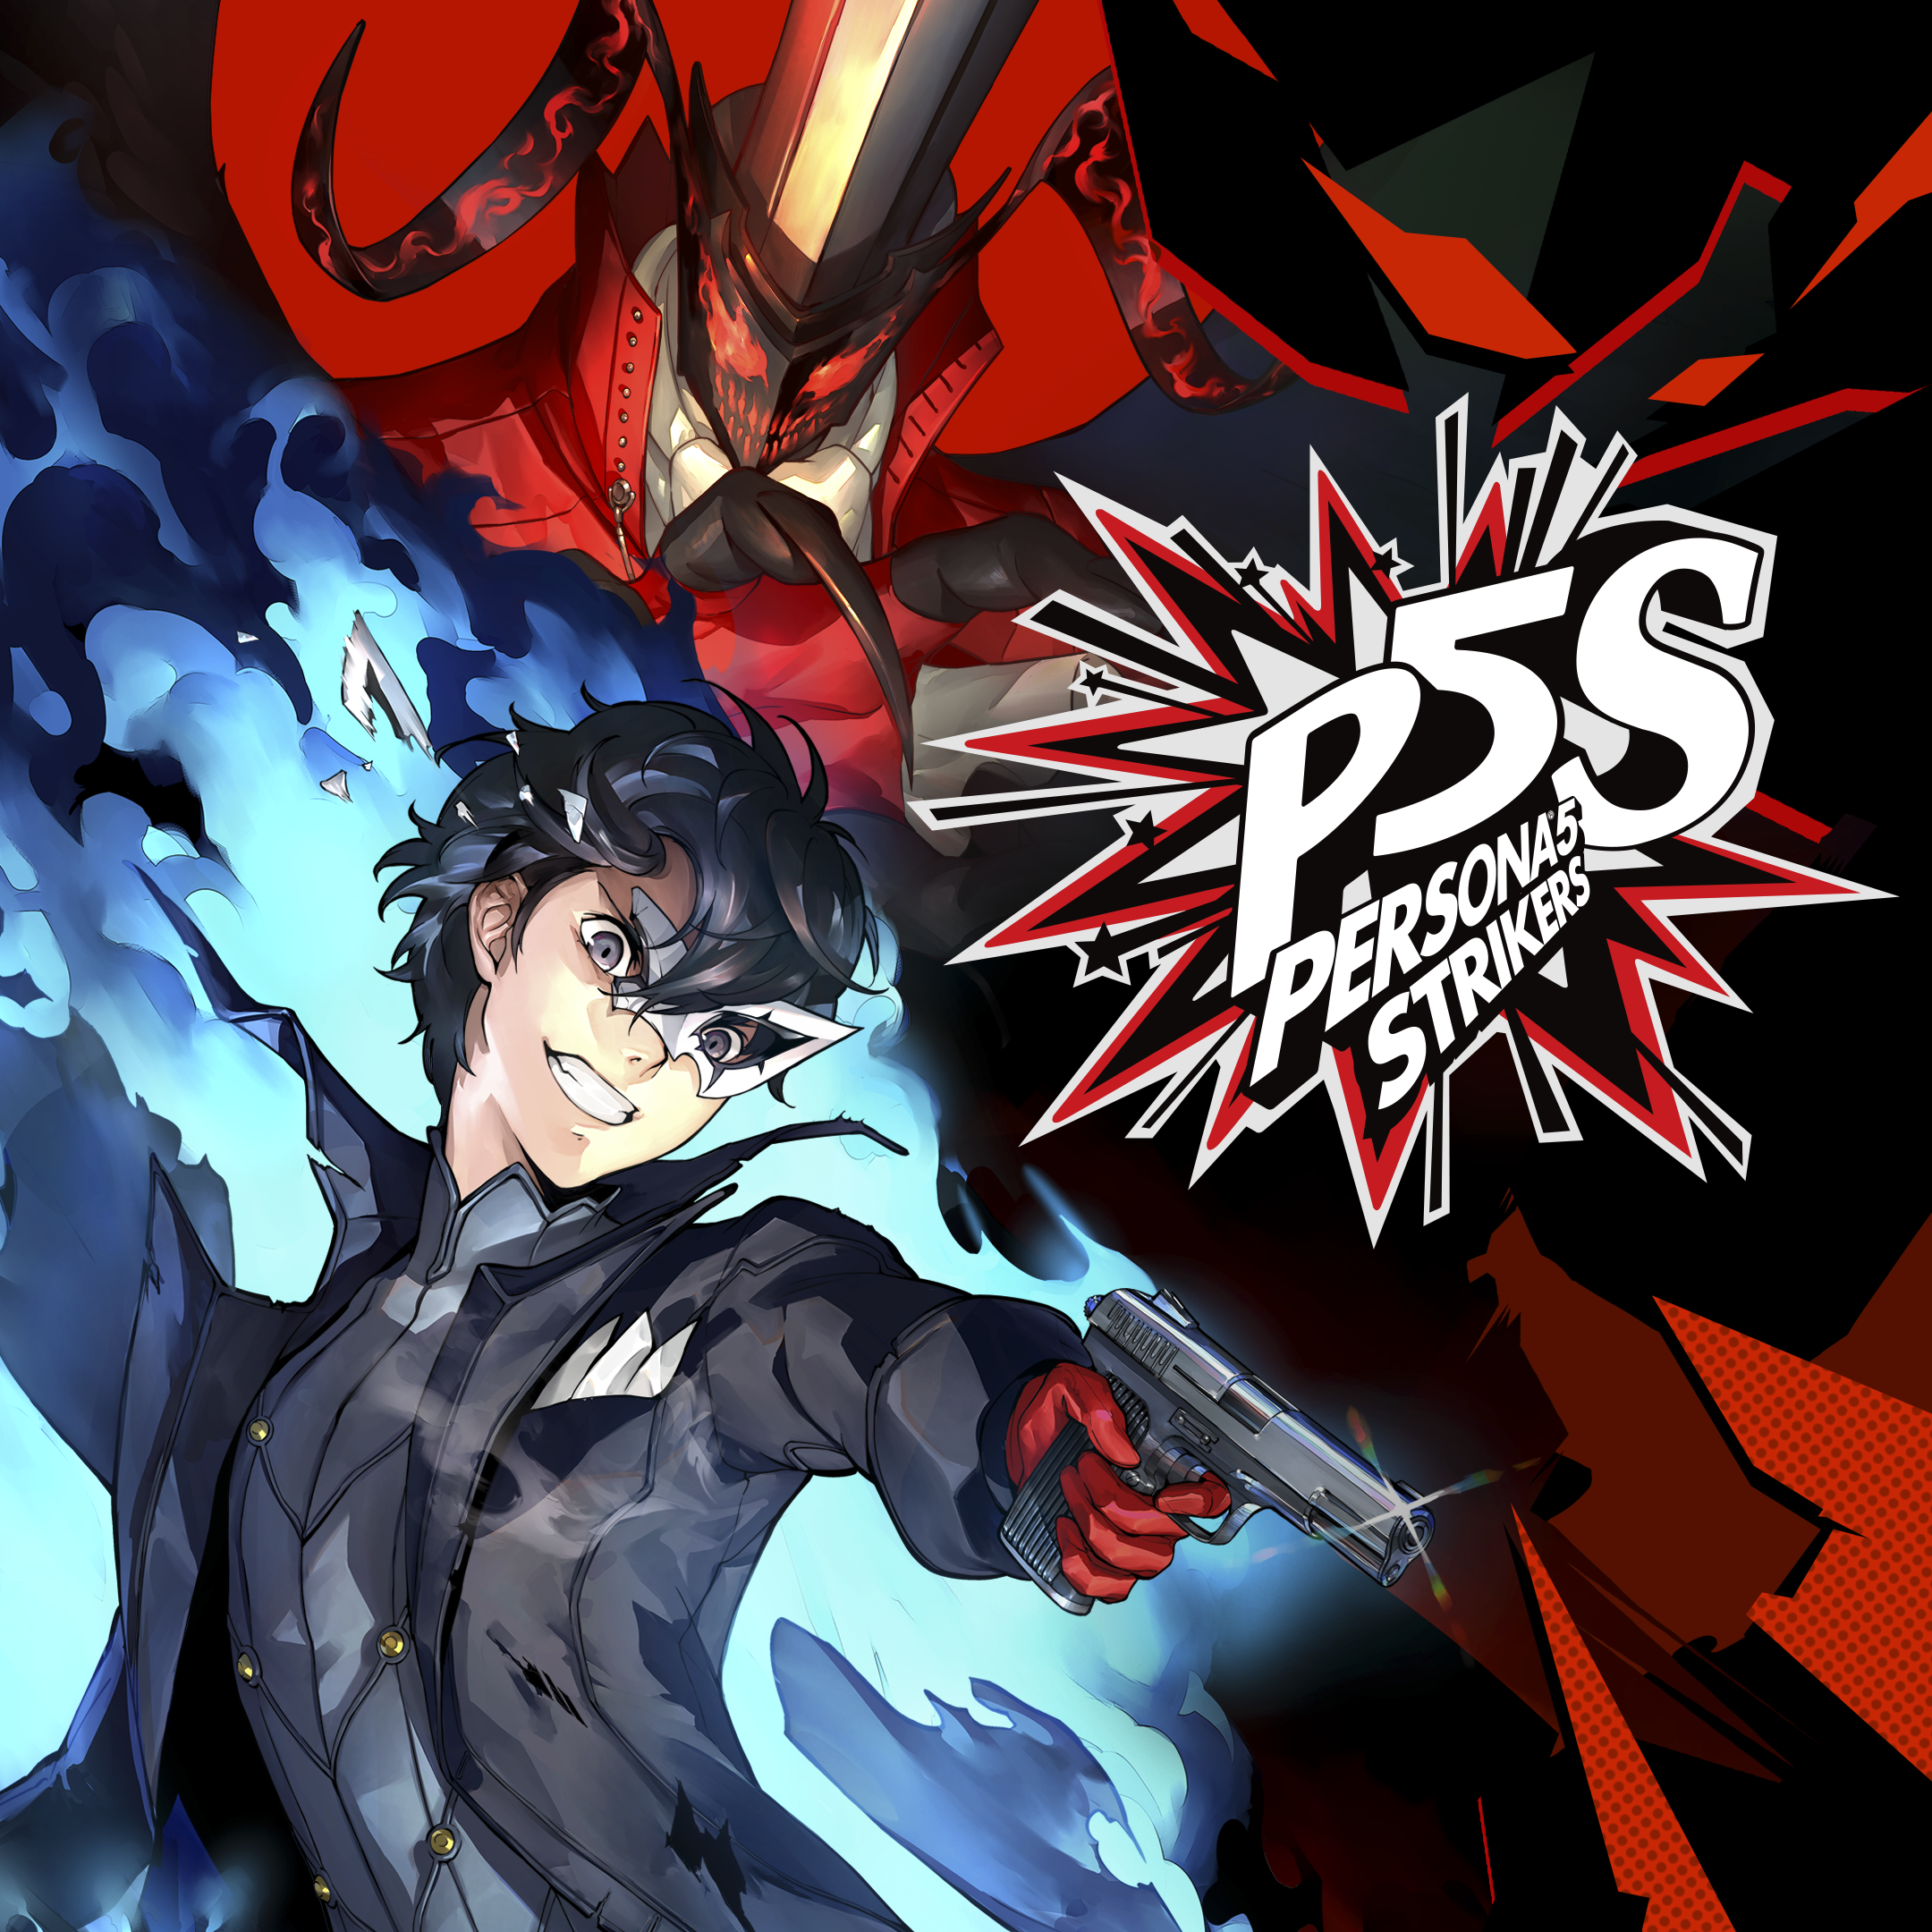 Persona 5 STRIKERS – Standard Edition-butiksomslag